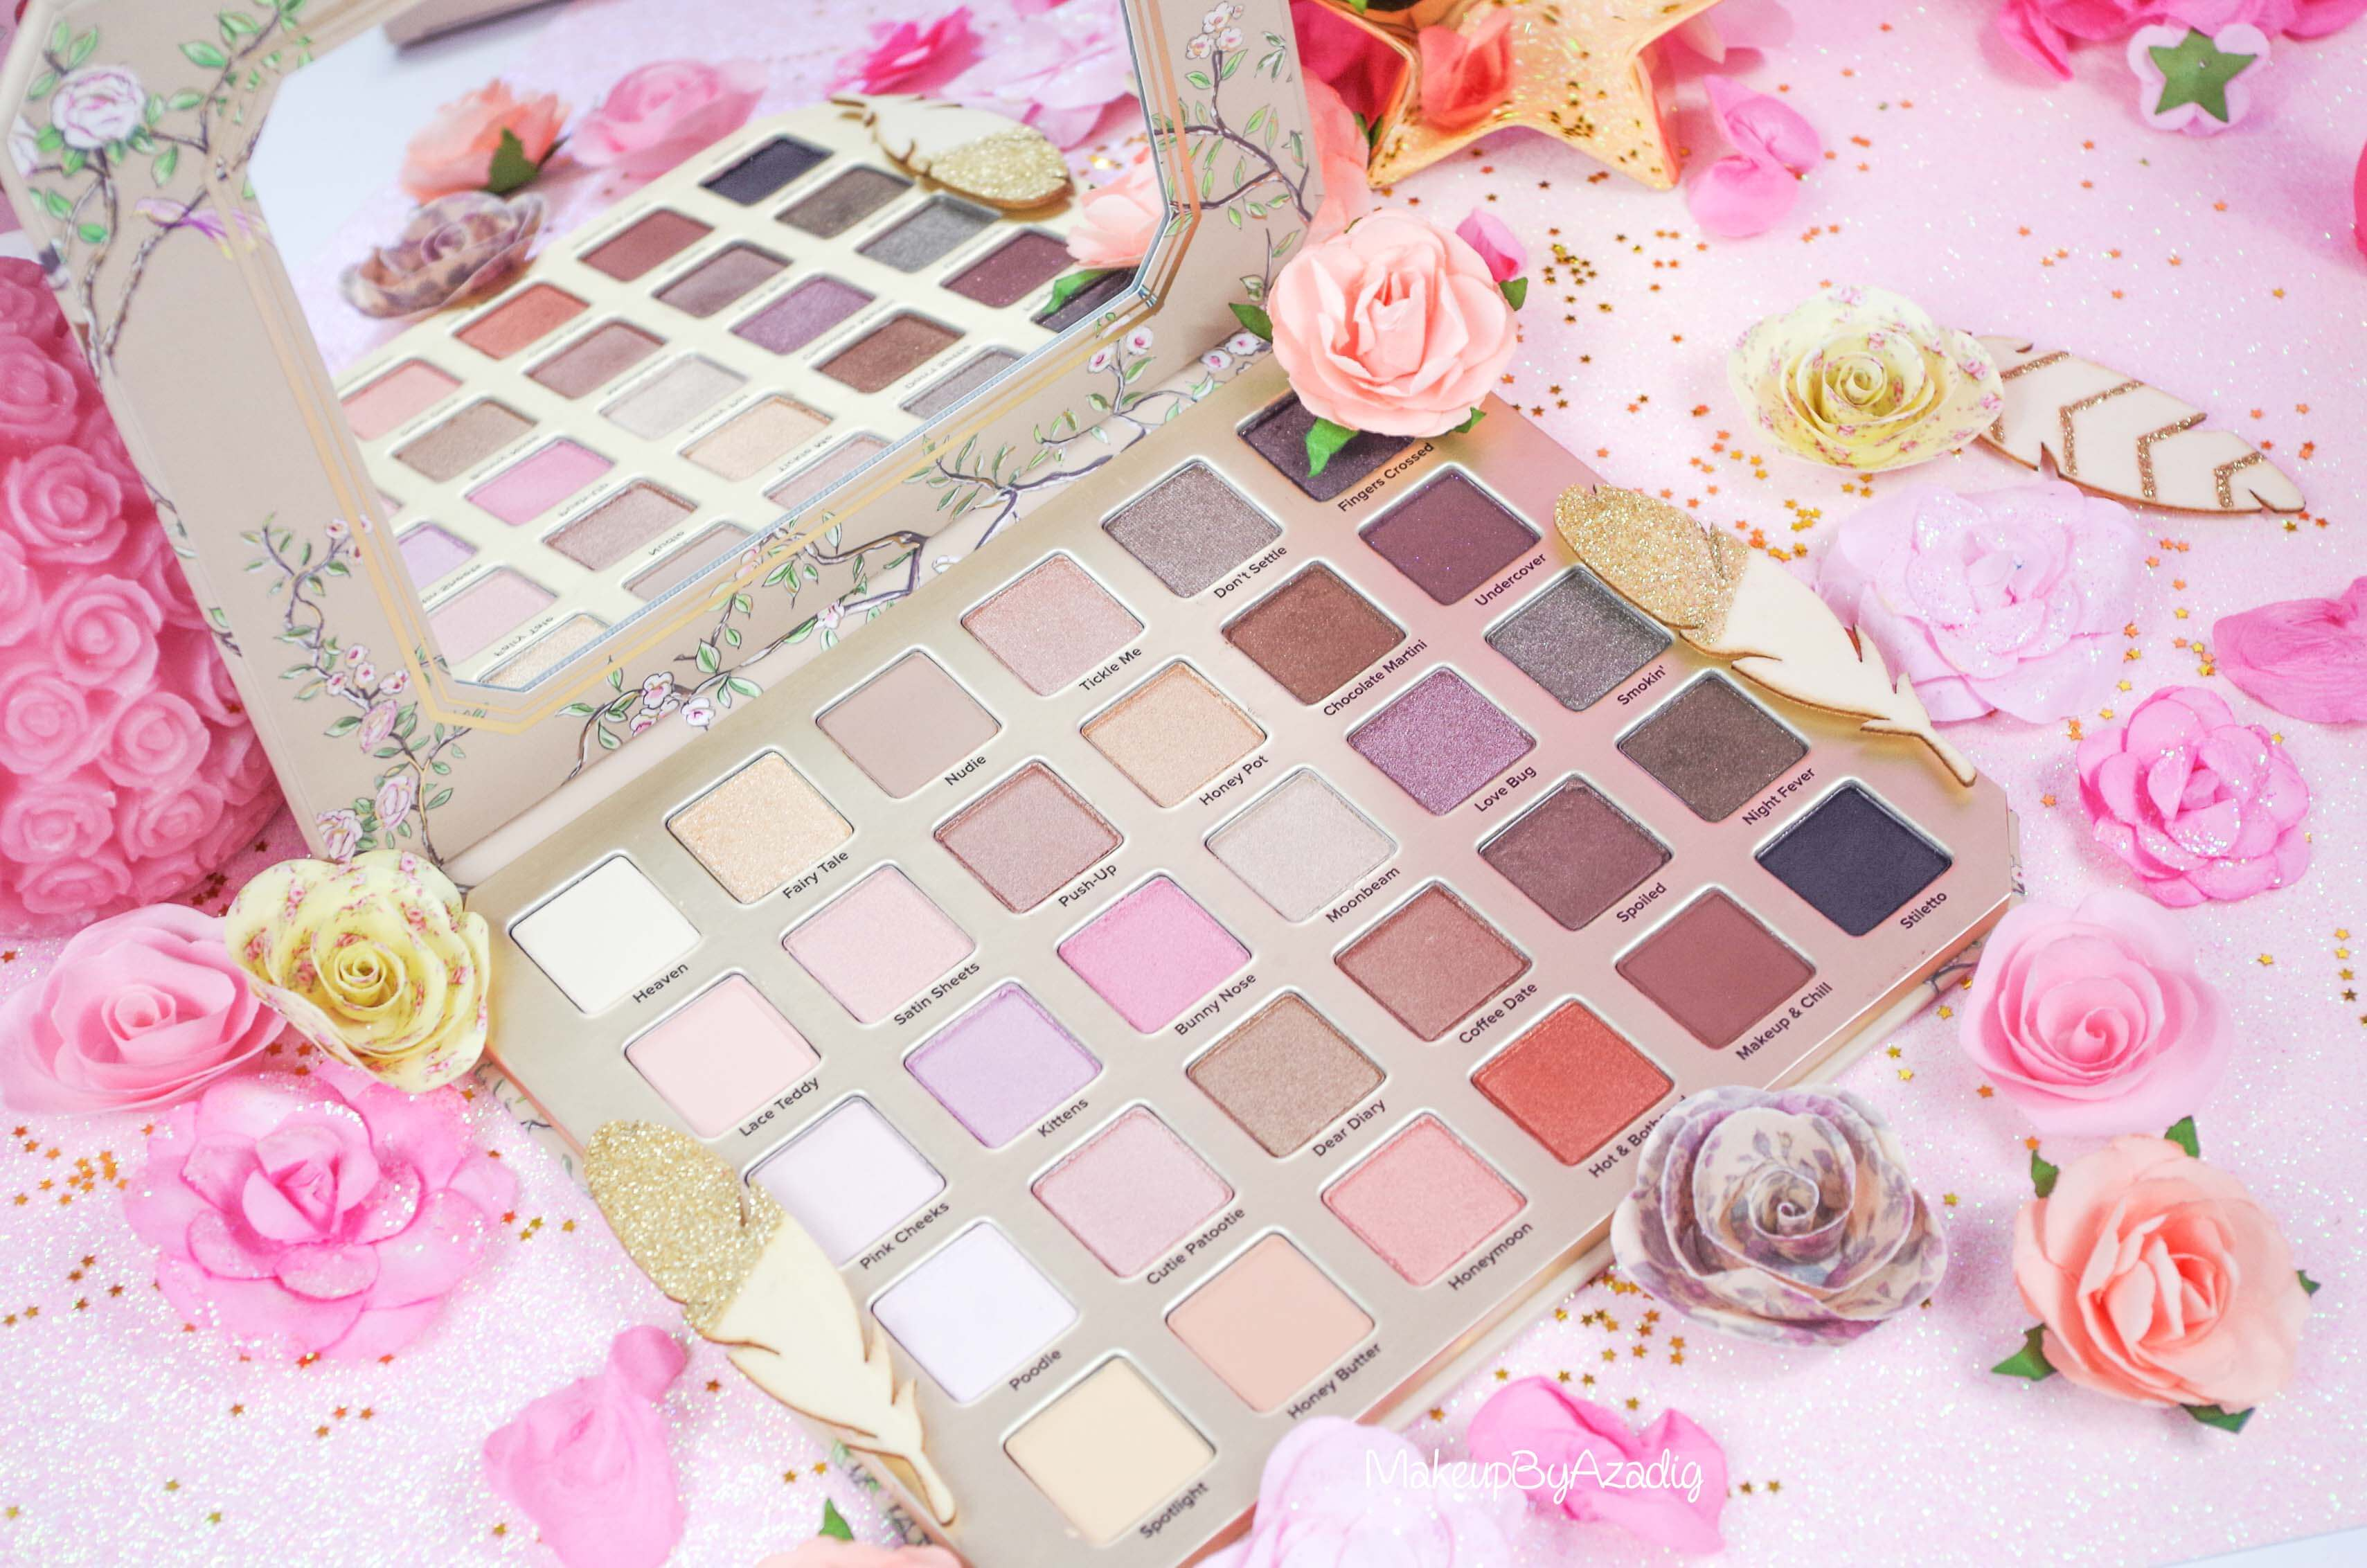 revue-review-palette-natural-love-too-faced-usa-france-disponible-sephora-blog-makeupbyazadig-avis-swatches-prix-fairy